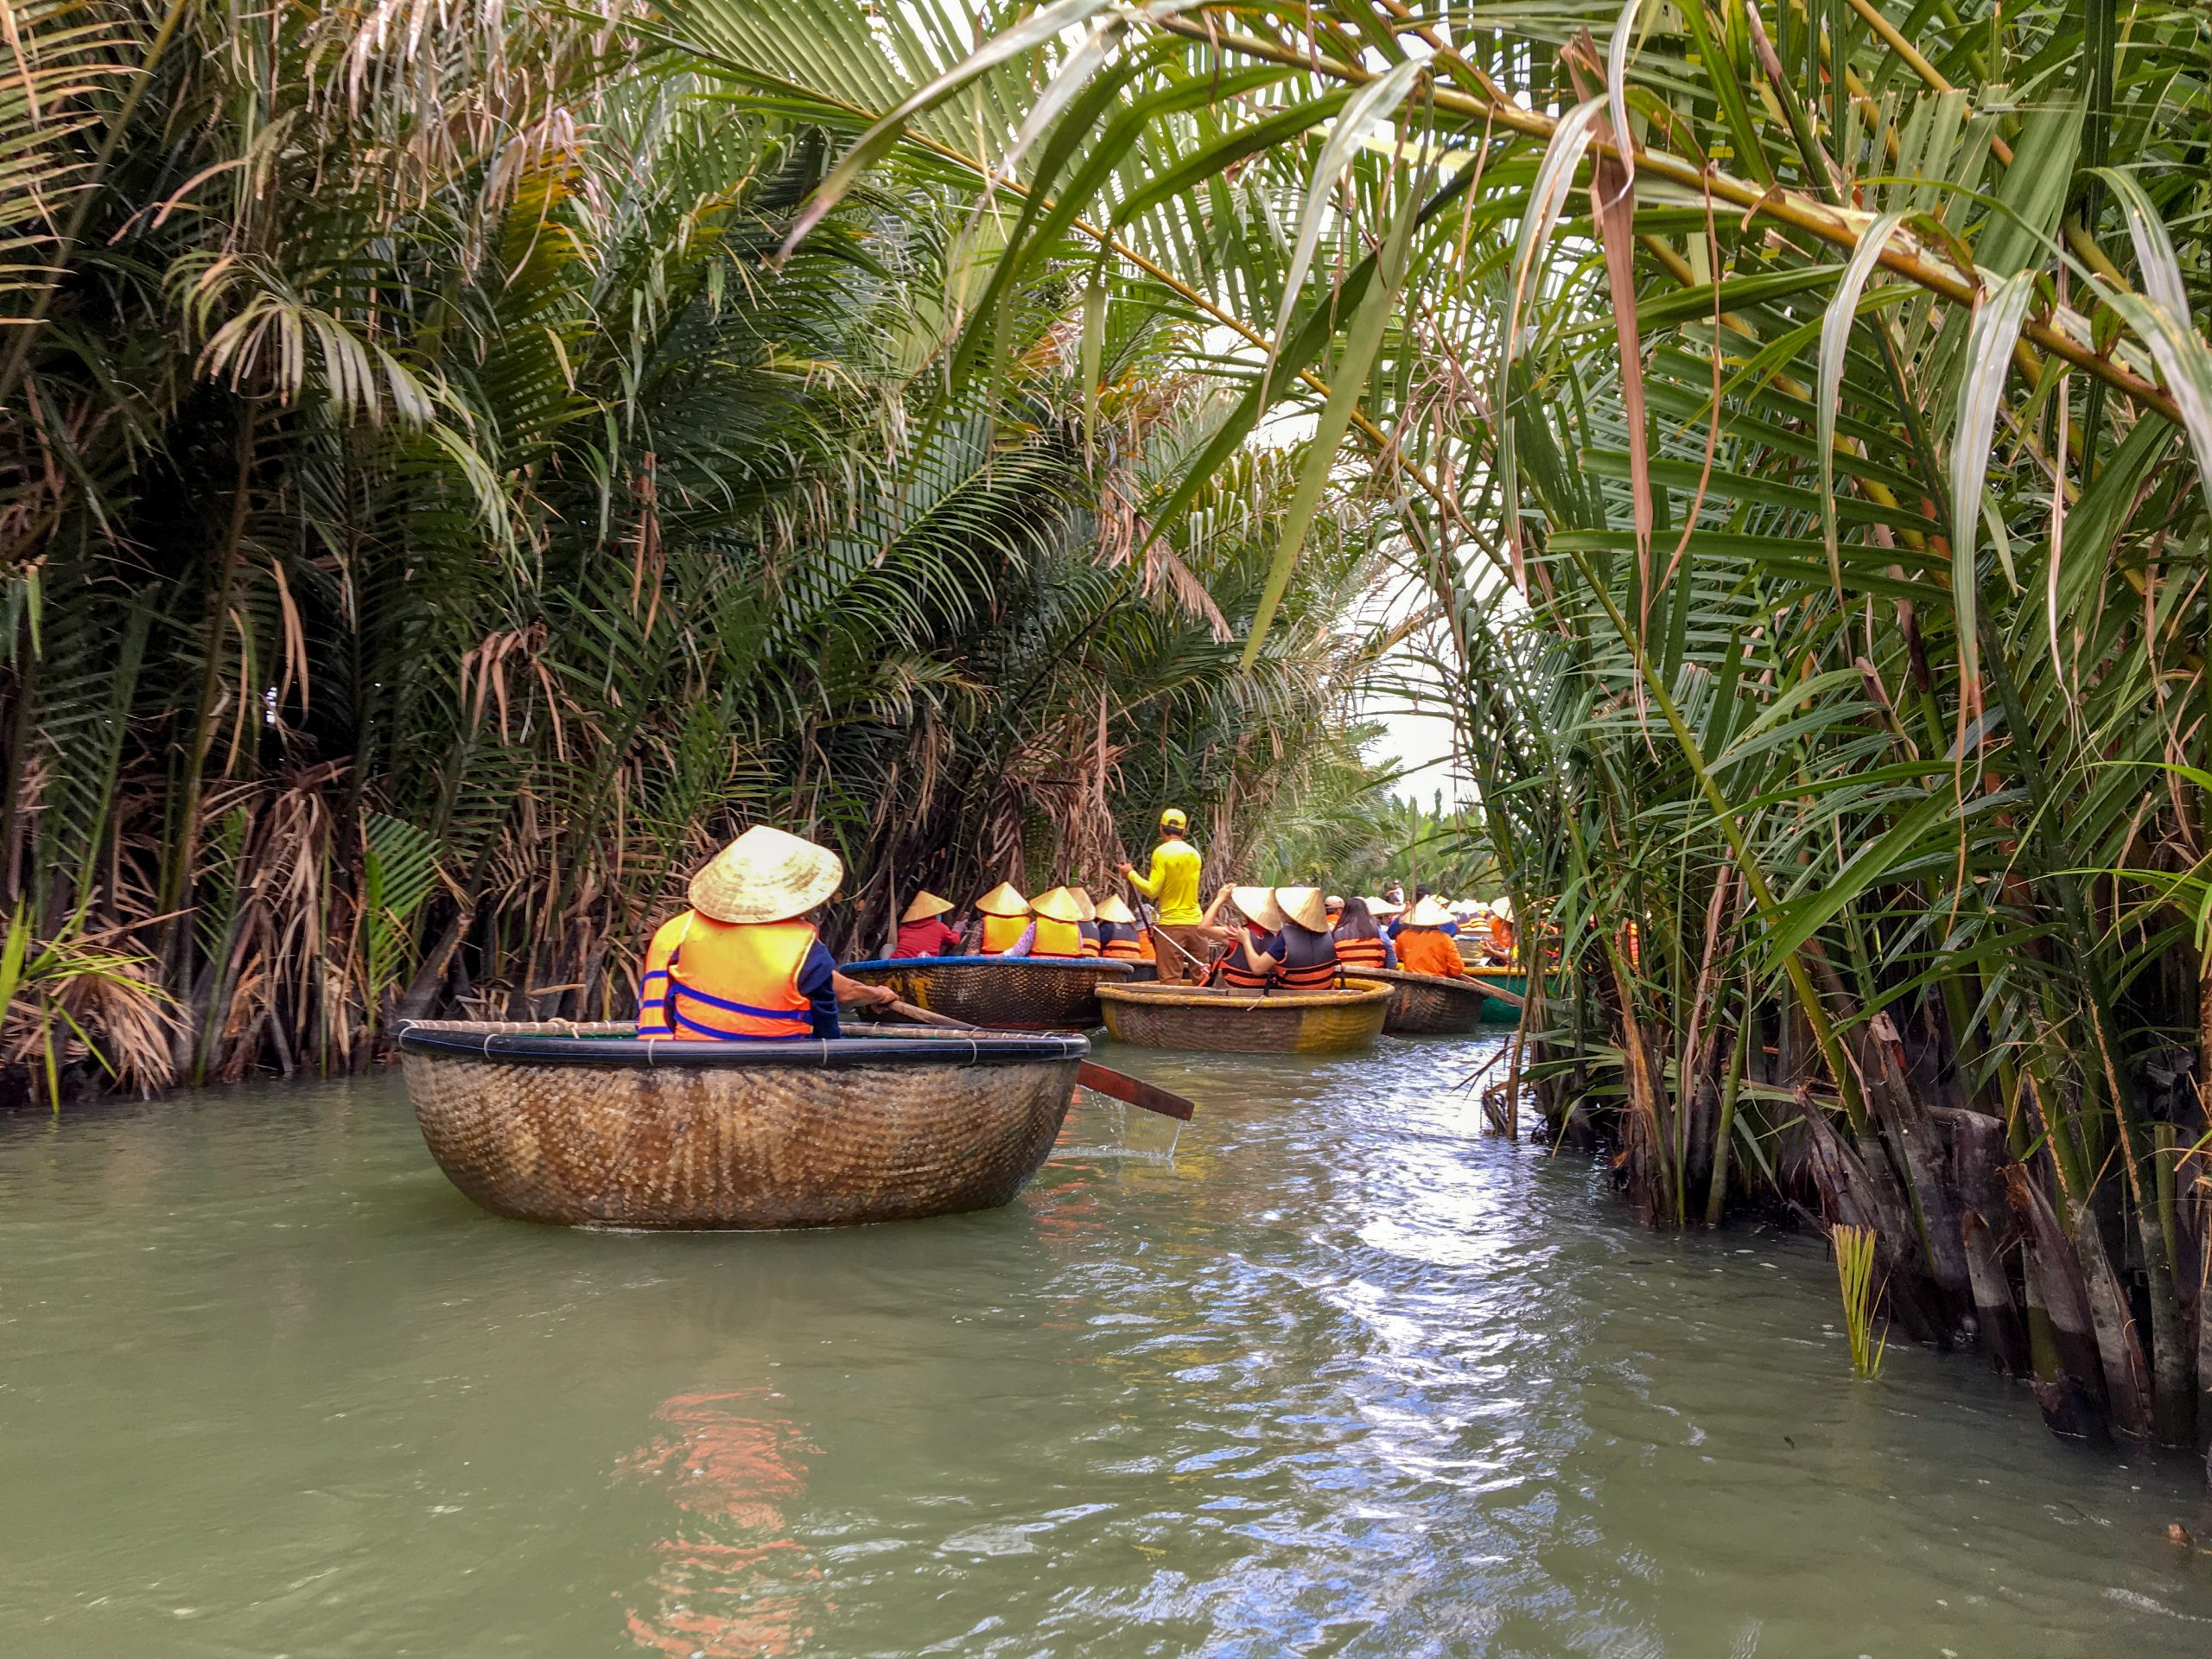 Enjoy A Boat Ride In Traditional Bamboo Baskets On Your Nature Experience And Cooking Class From Hoi An